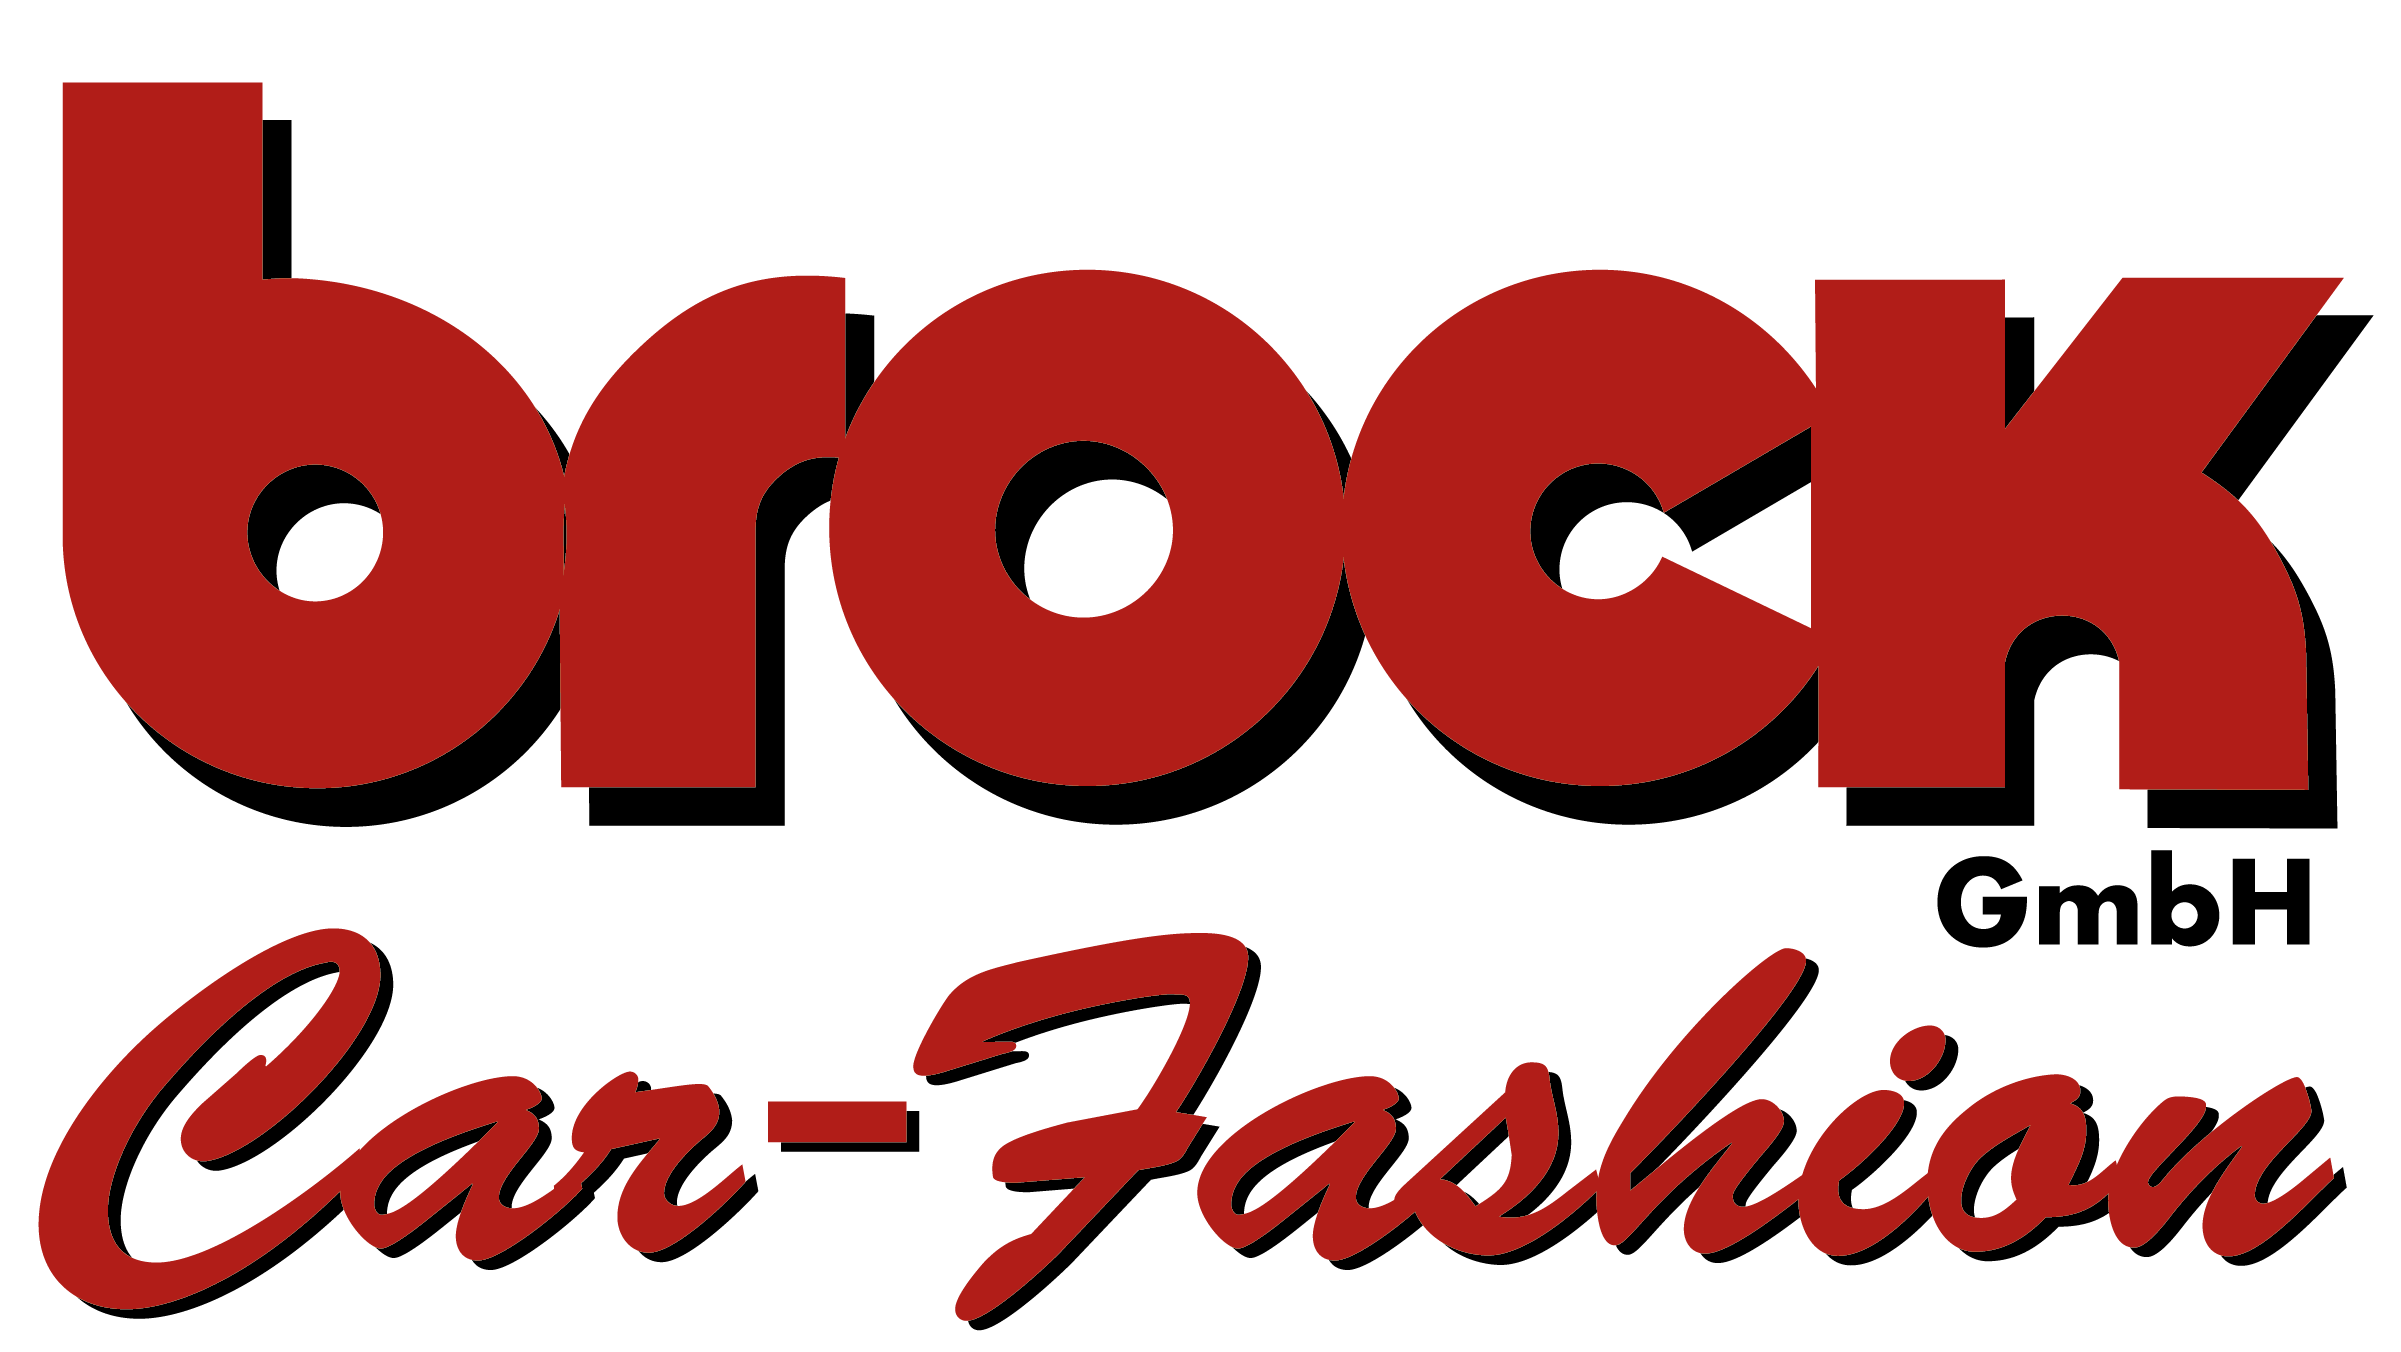 Brock Car-Fashion GmbH